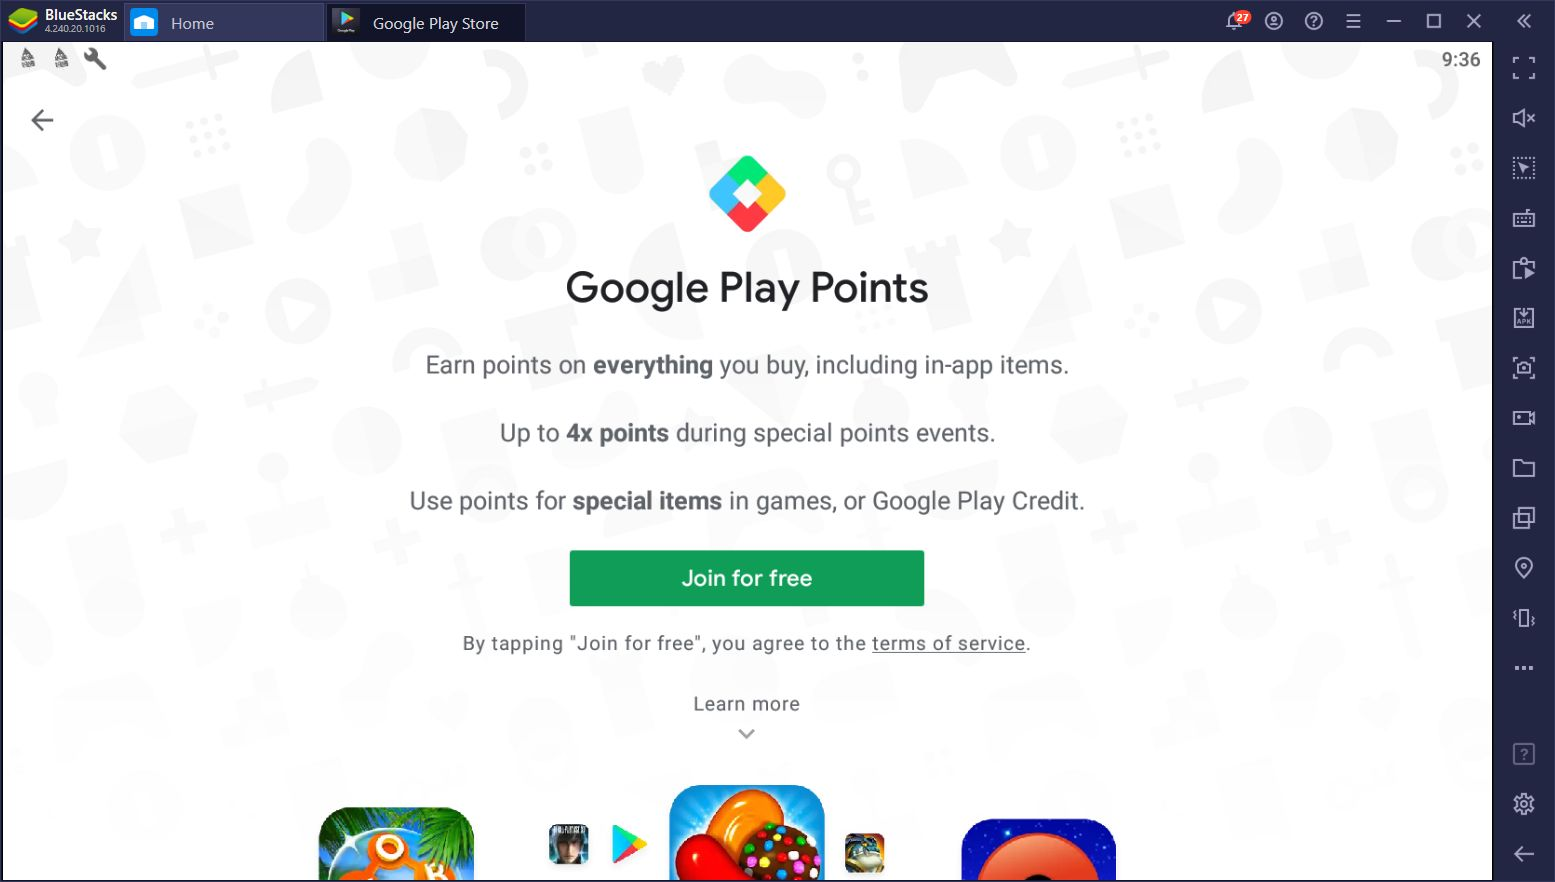 Google Play Points – How to Earn Them and Use Them To Get Free Stuff In Your Favorite Android Games